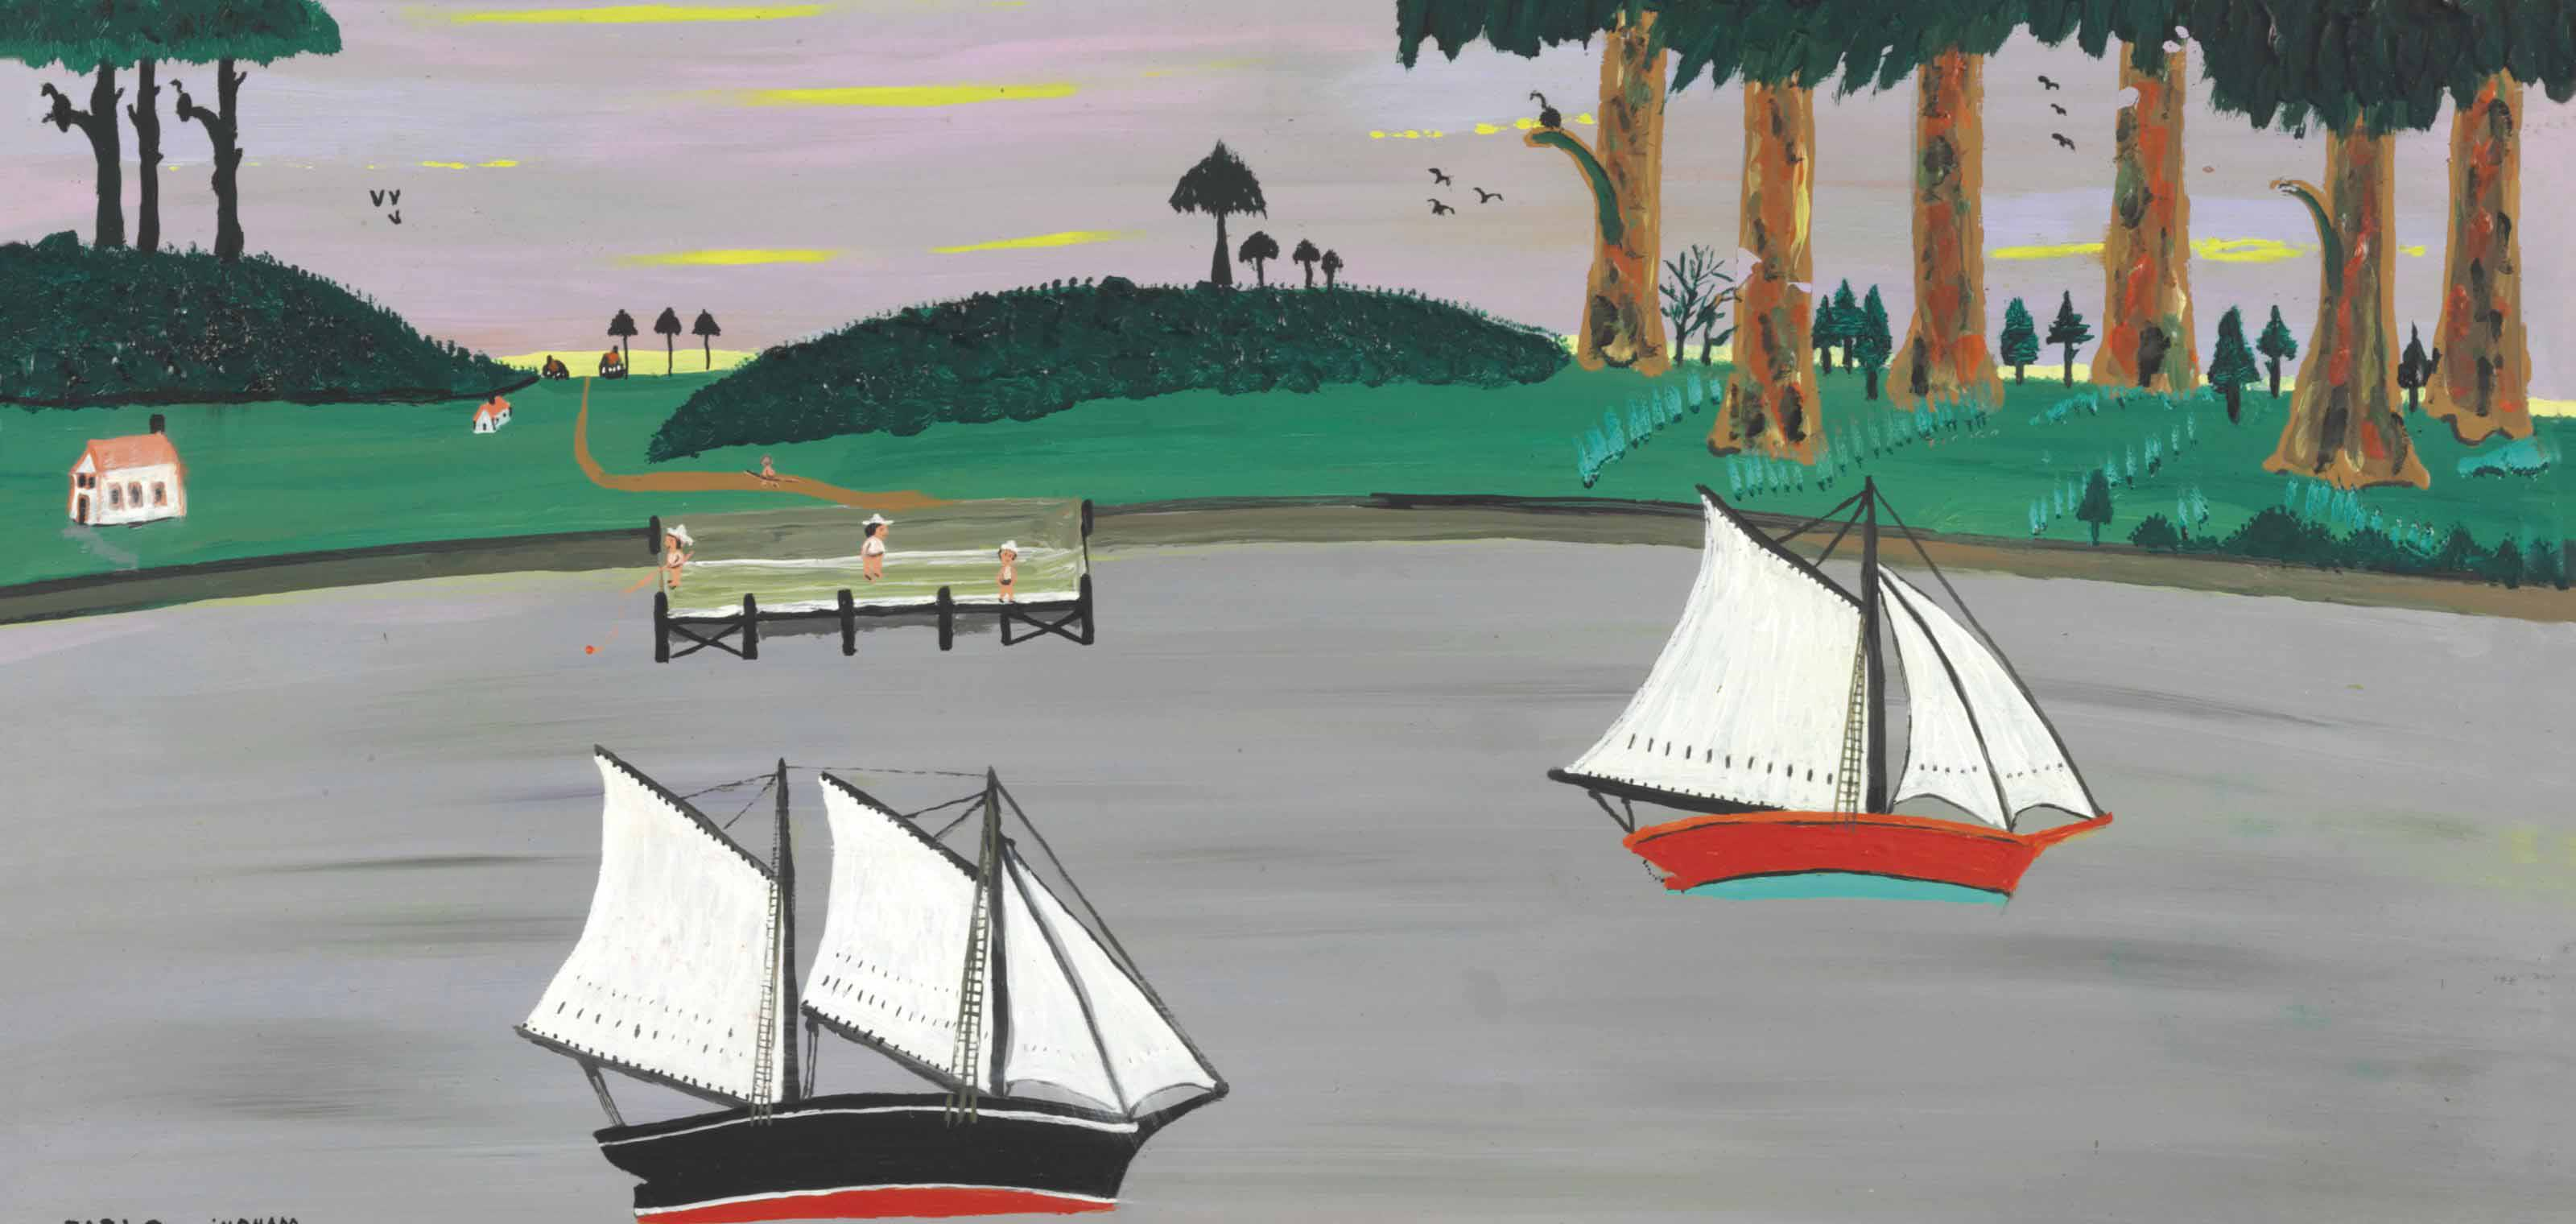 Red and Black Sailboats